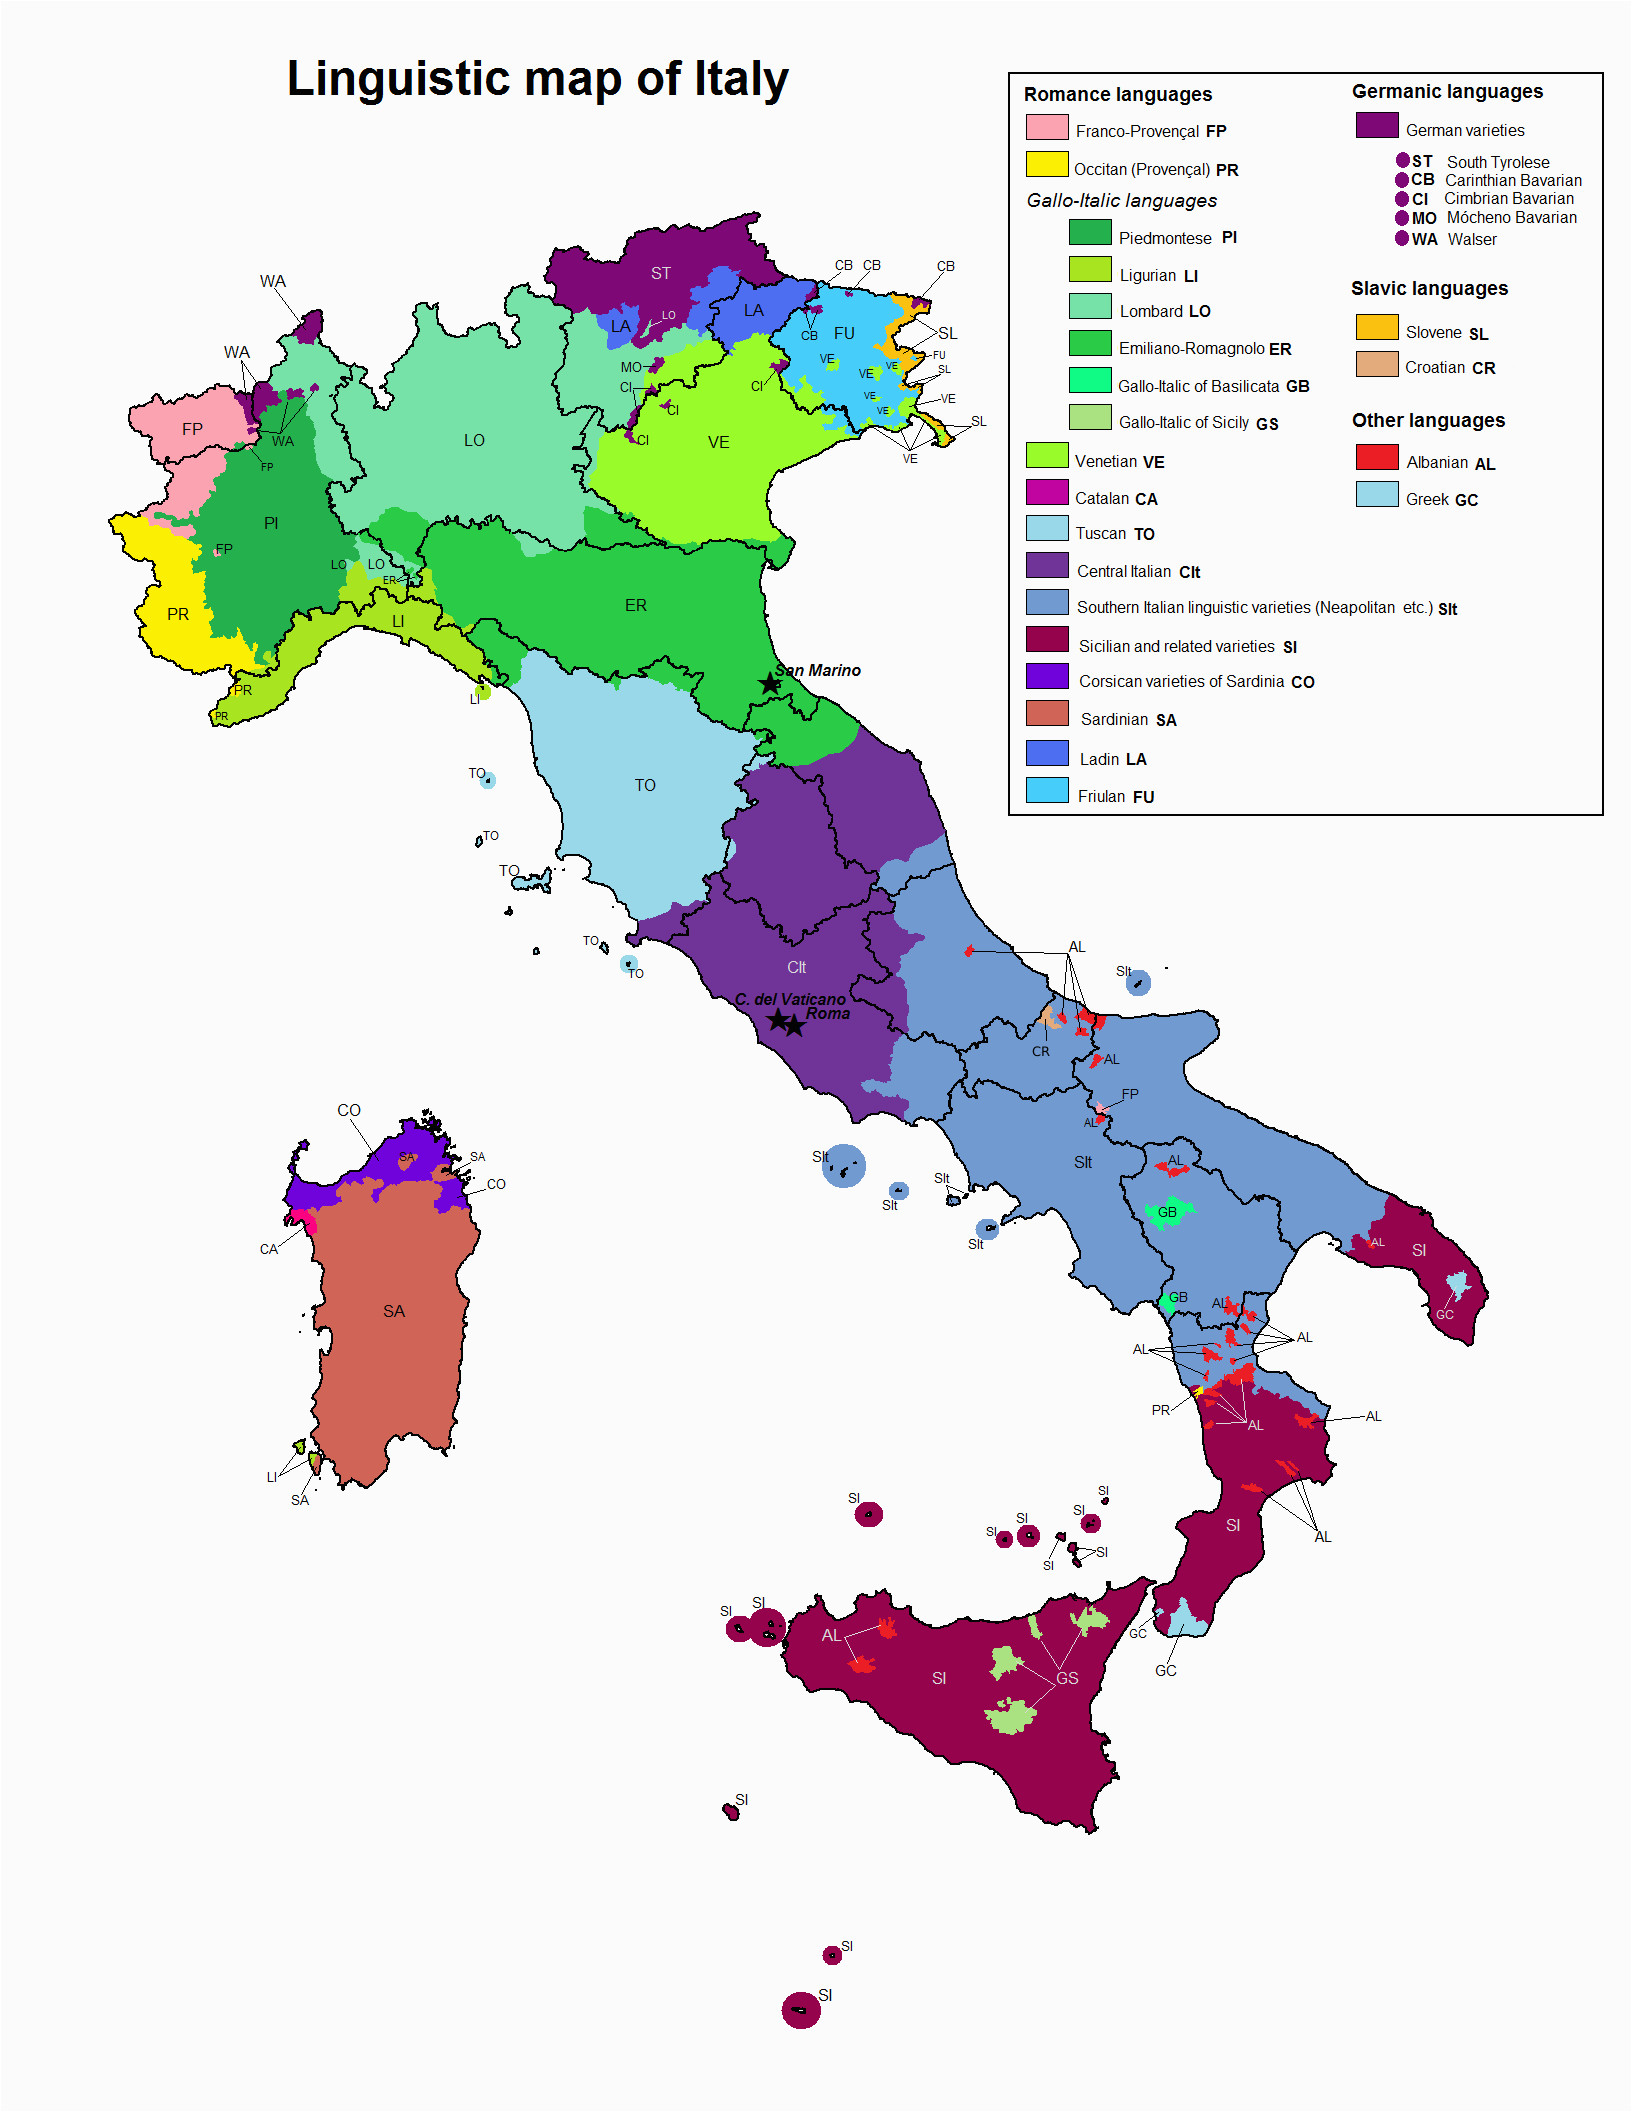 Map Of Provinces Of Italy.Provinces In Italy Map Linguistic Map Of Italy Maps Italy Map Map Of